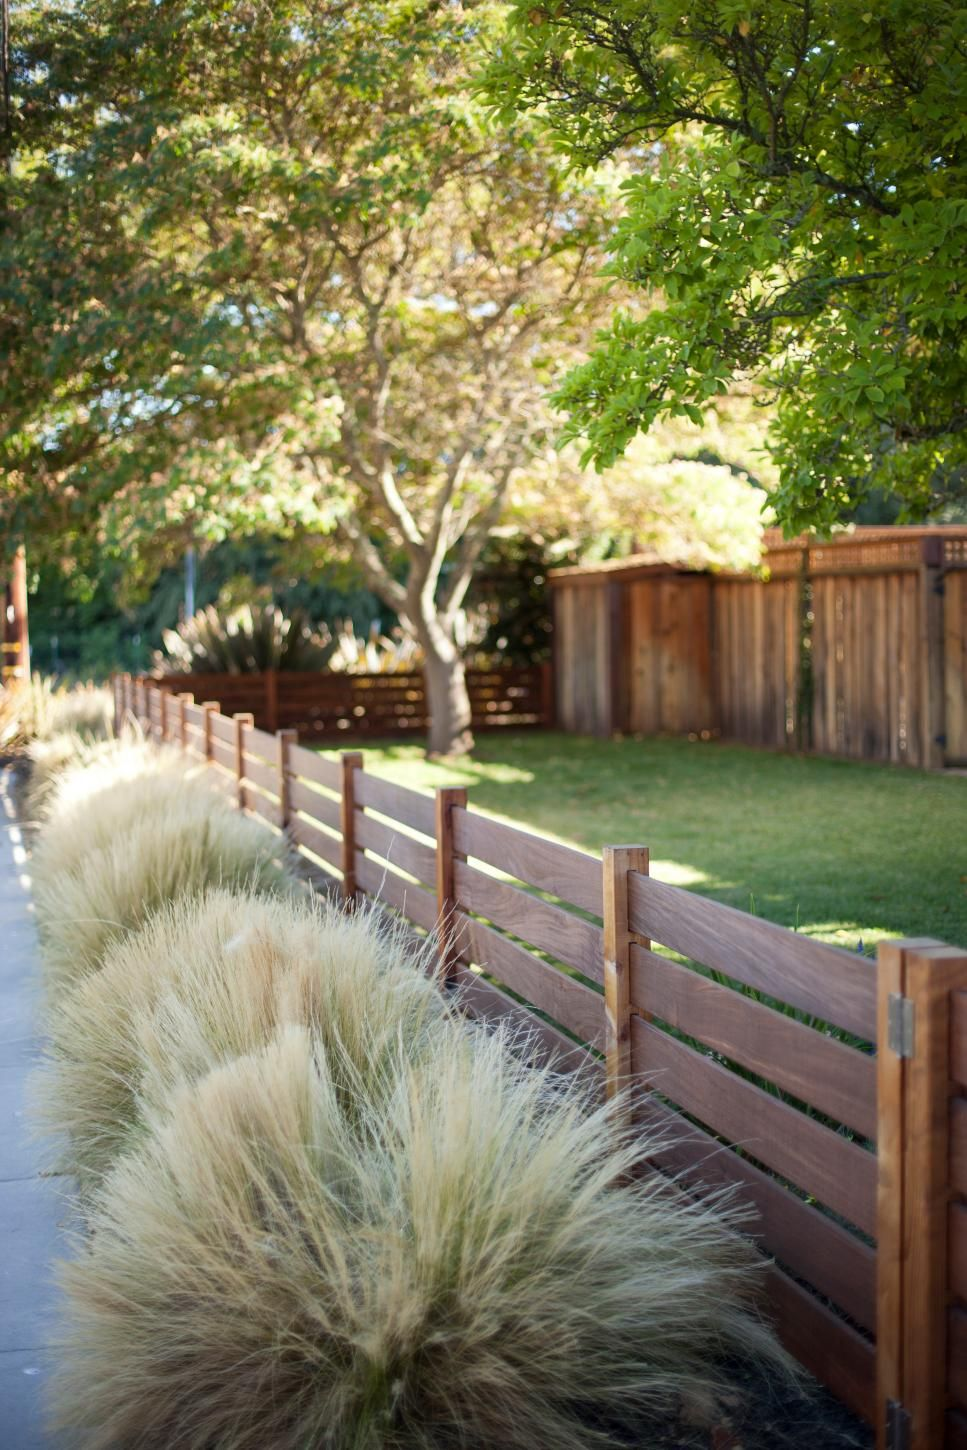 Home garden style  Wooden Fence Designs  For the Home  Pinterest  Fence Front yard